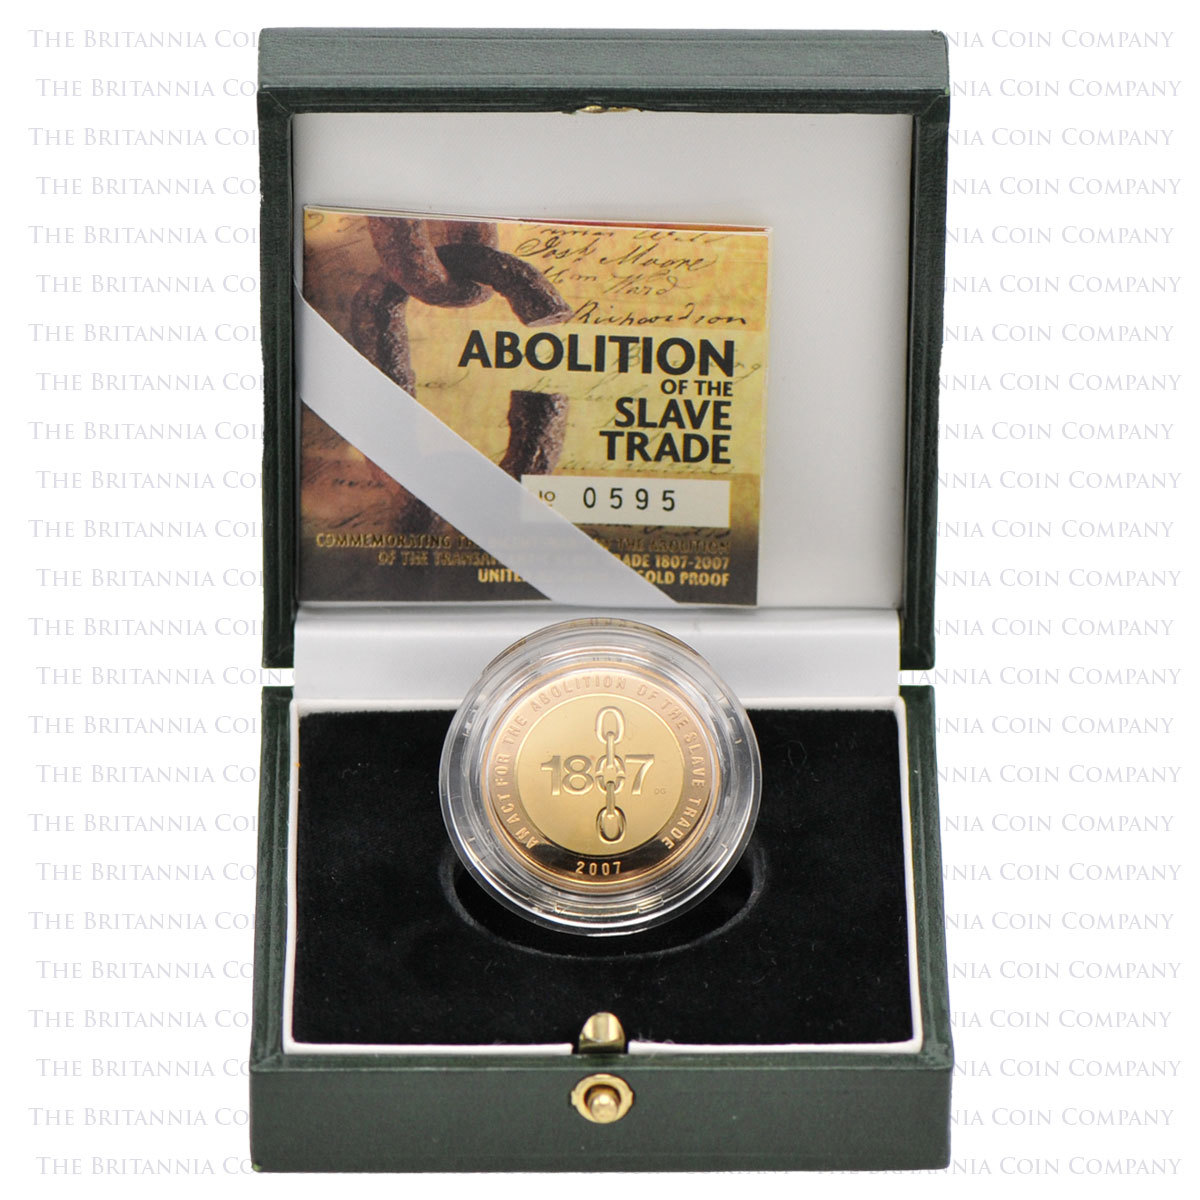 2007-PROOF-£2-ABOLITION-COIN-BOXED